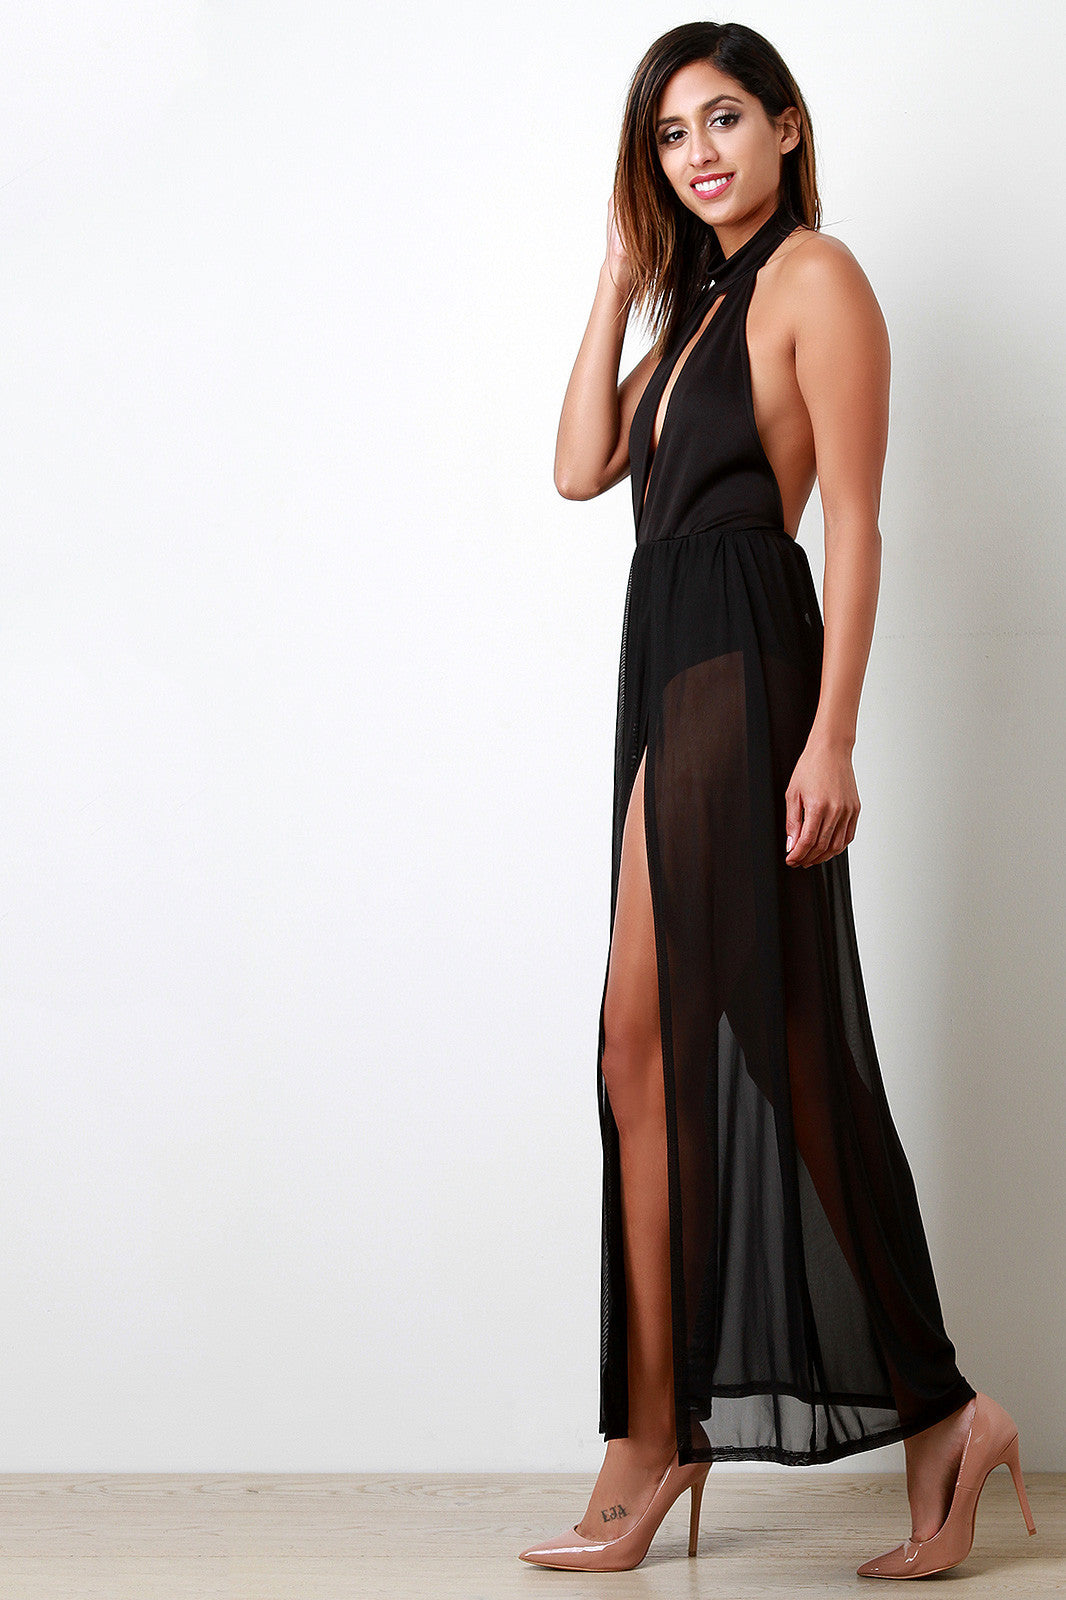 Bare Back Contrast Mesh Maxi Dress - Thick 'N' Curvy Shop - 4